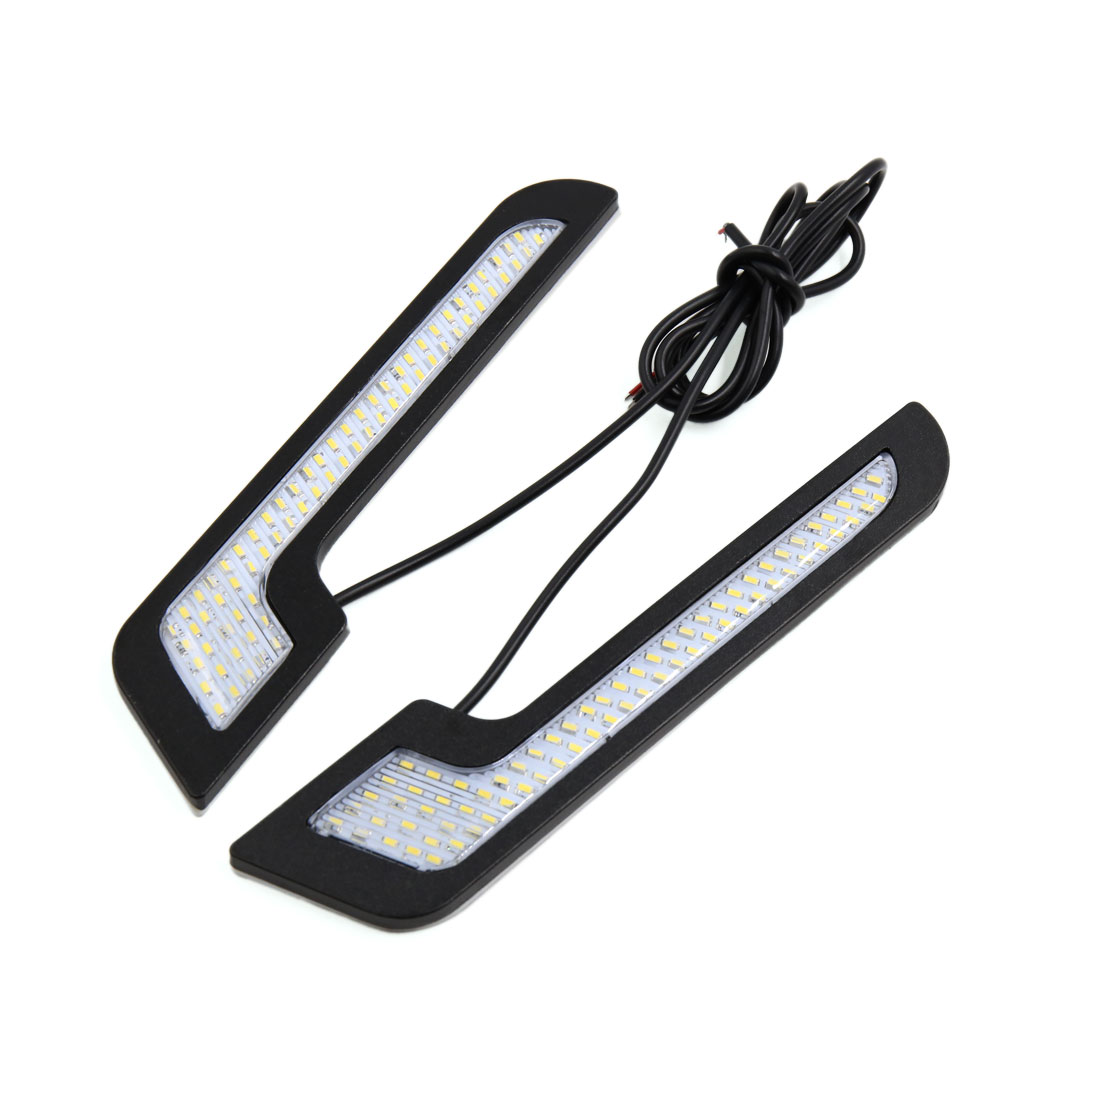 2Pcs Black Shell White 72 LED 7 Shape Adhesive Daytime Running Light Lamp for Car